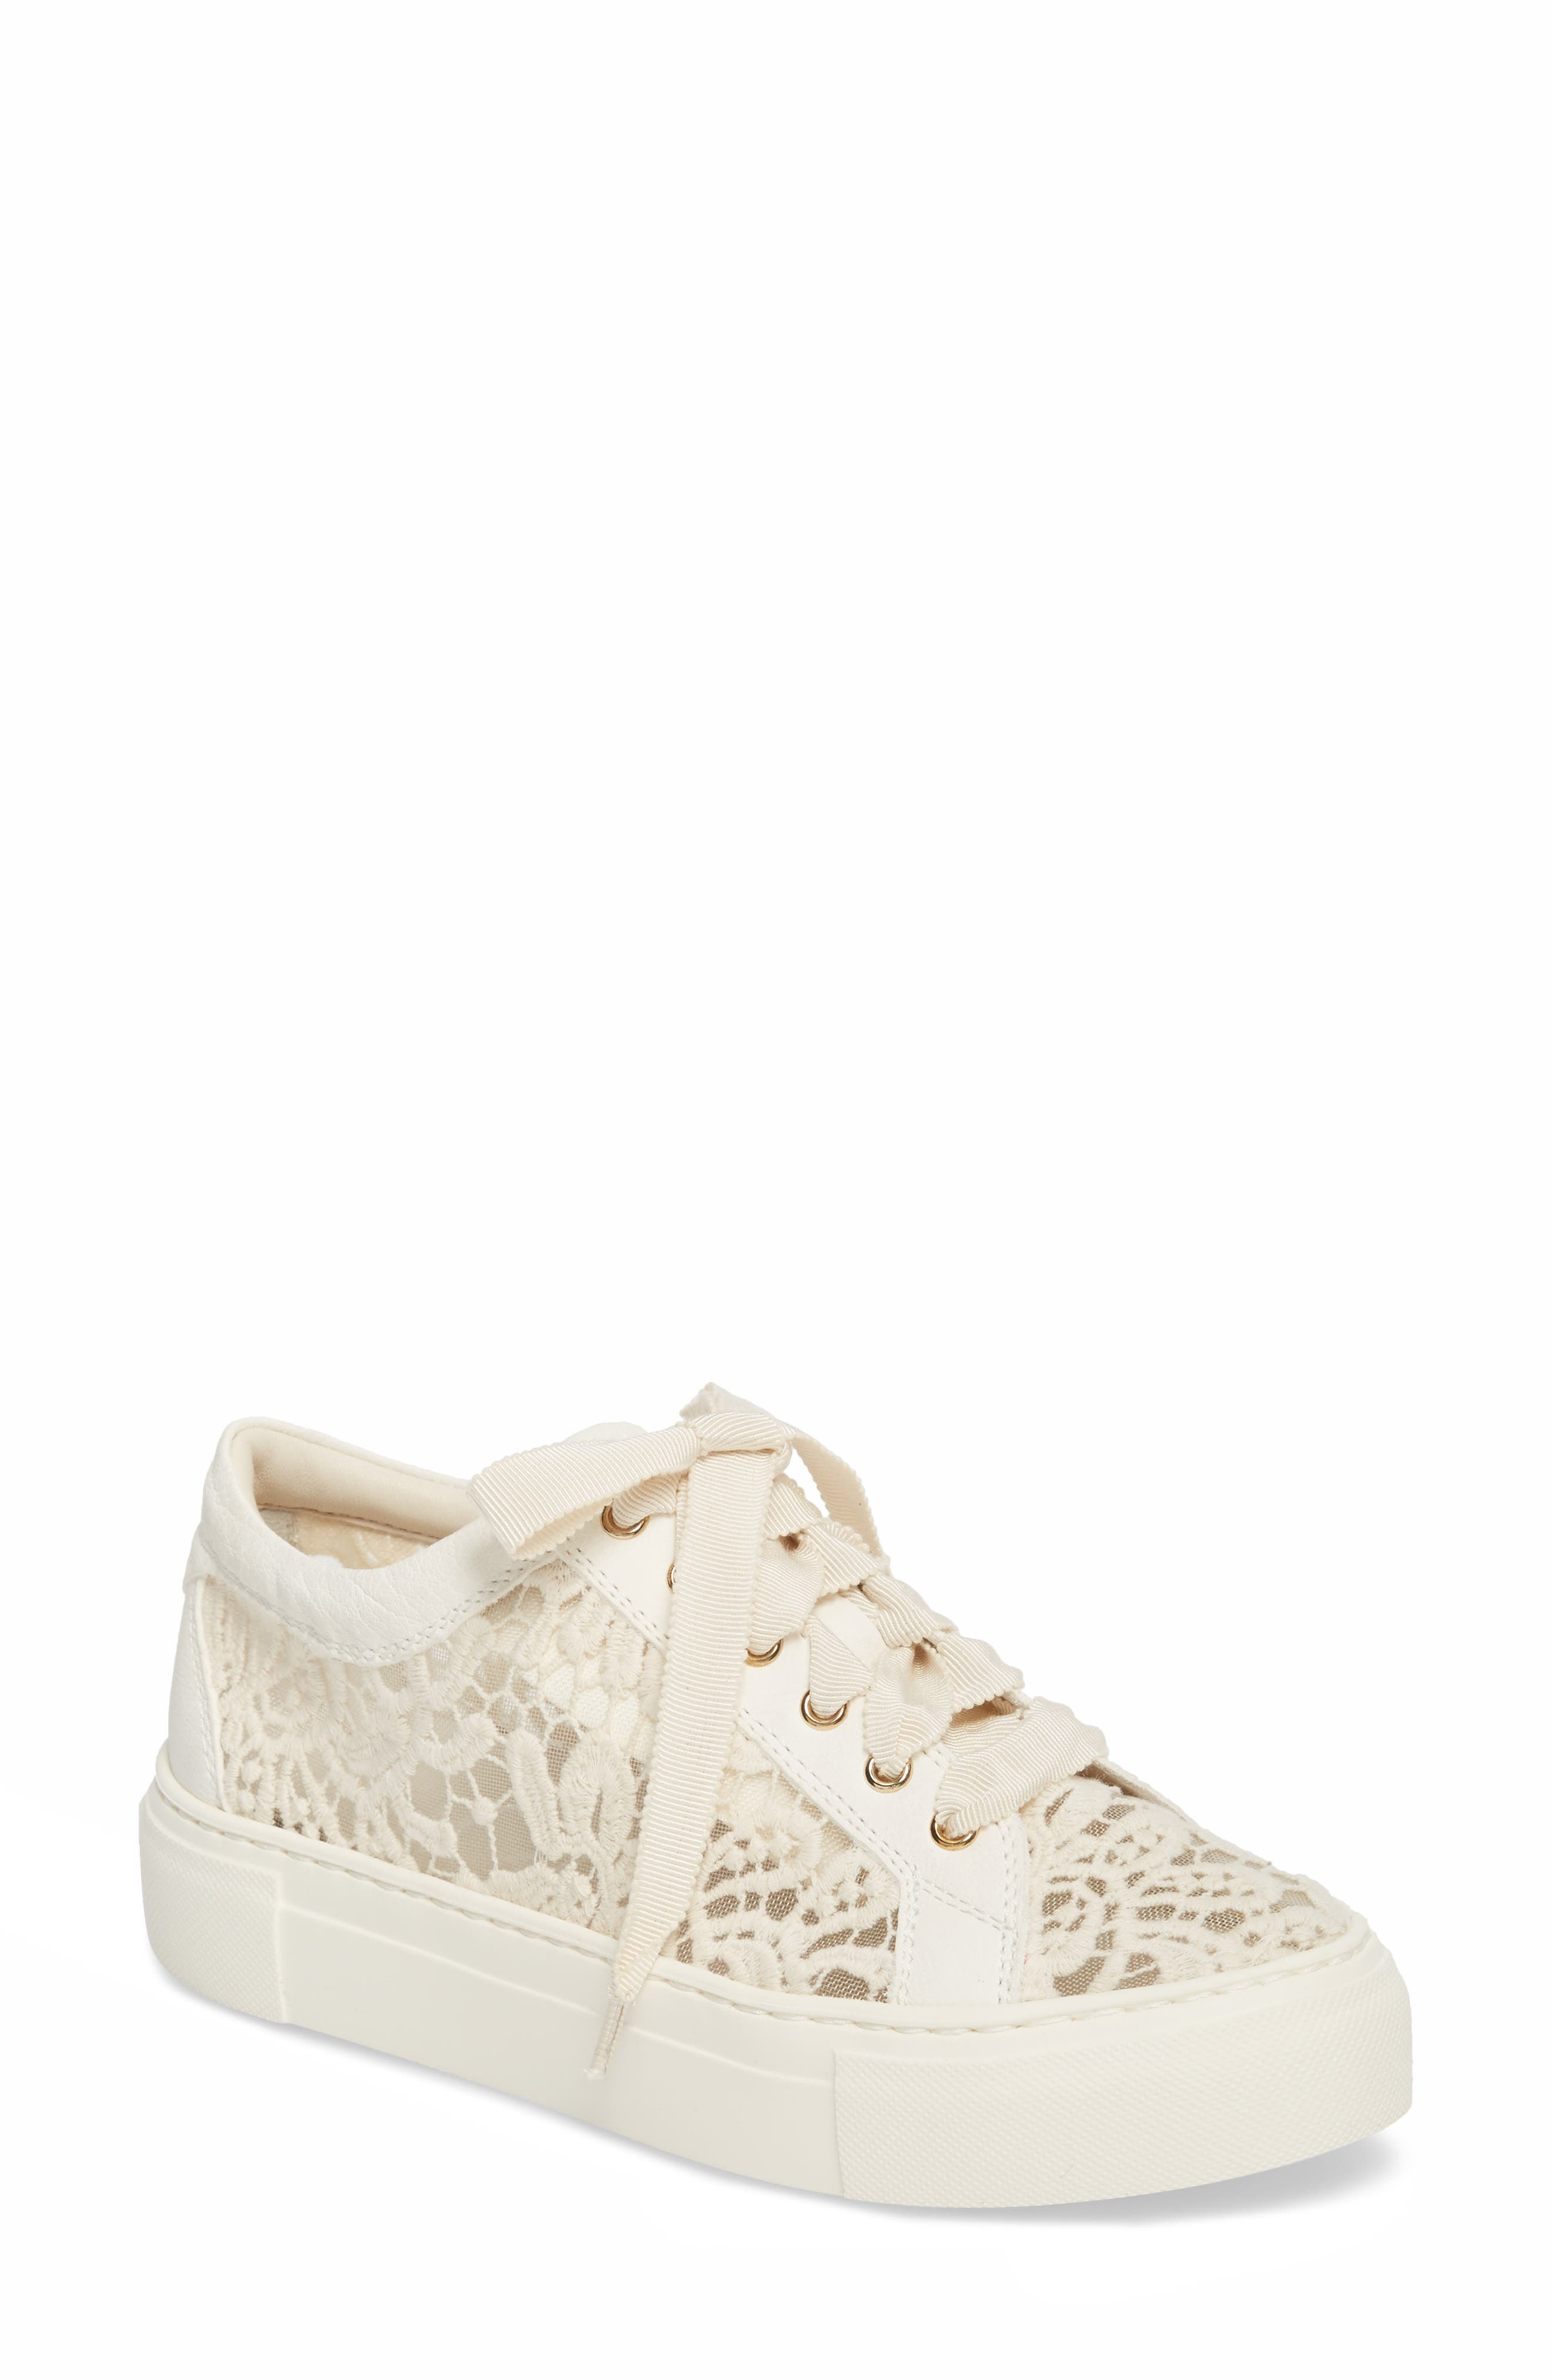 Embroidered Lace Sneaker,                             Main thumbnail 1, color,                             101